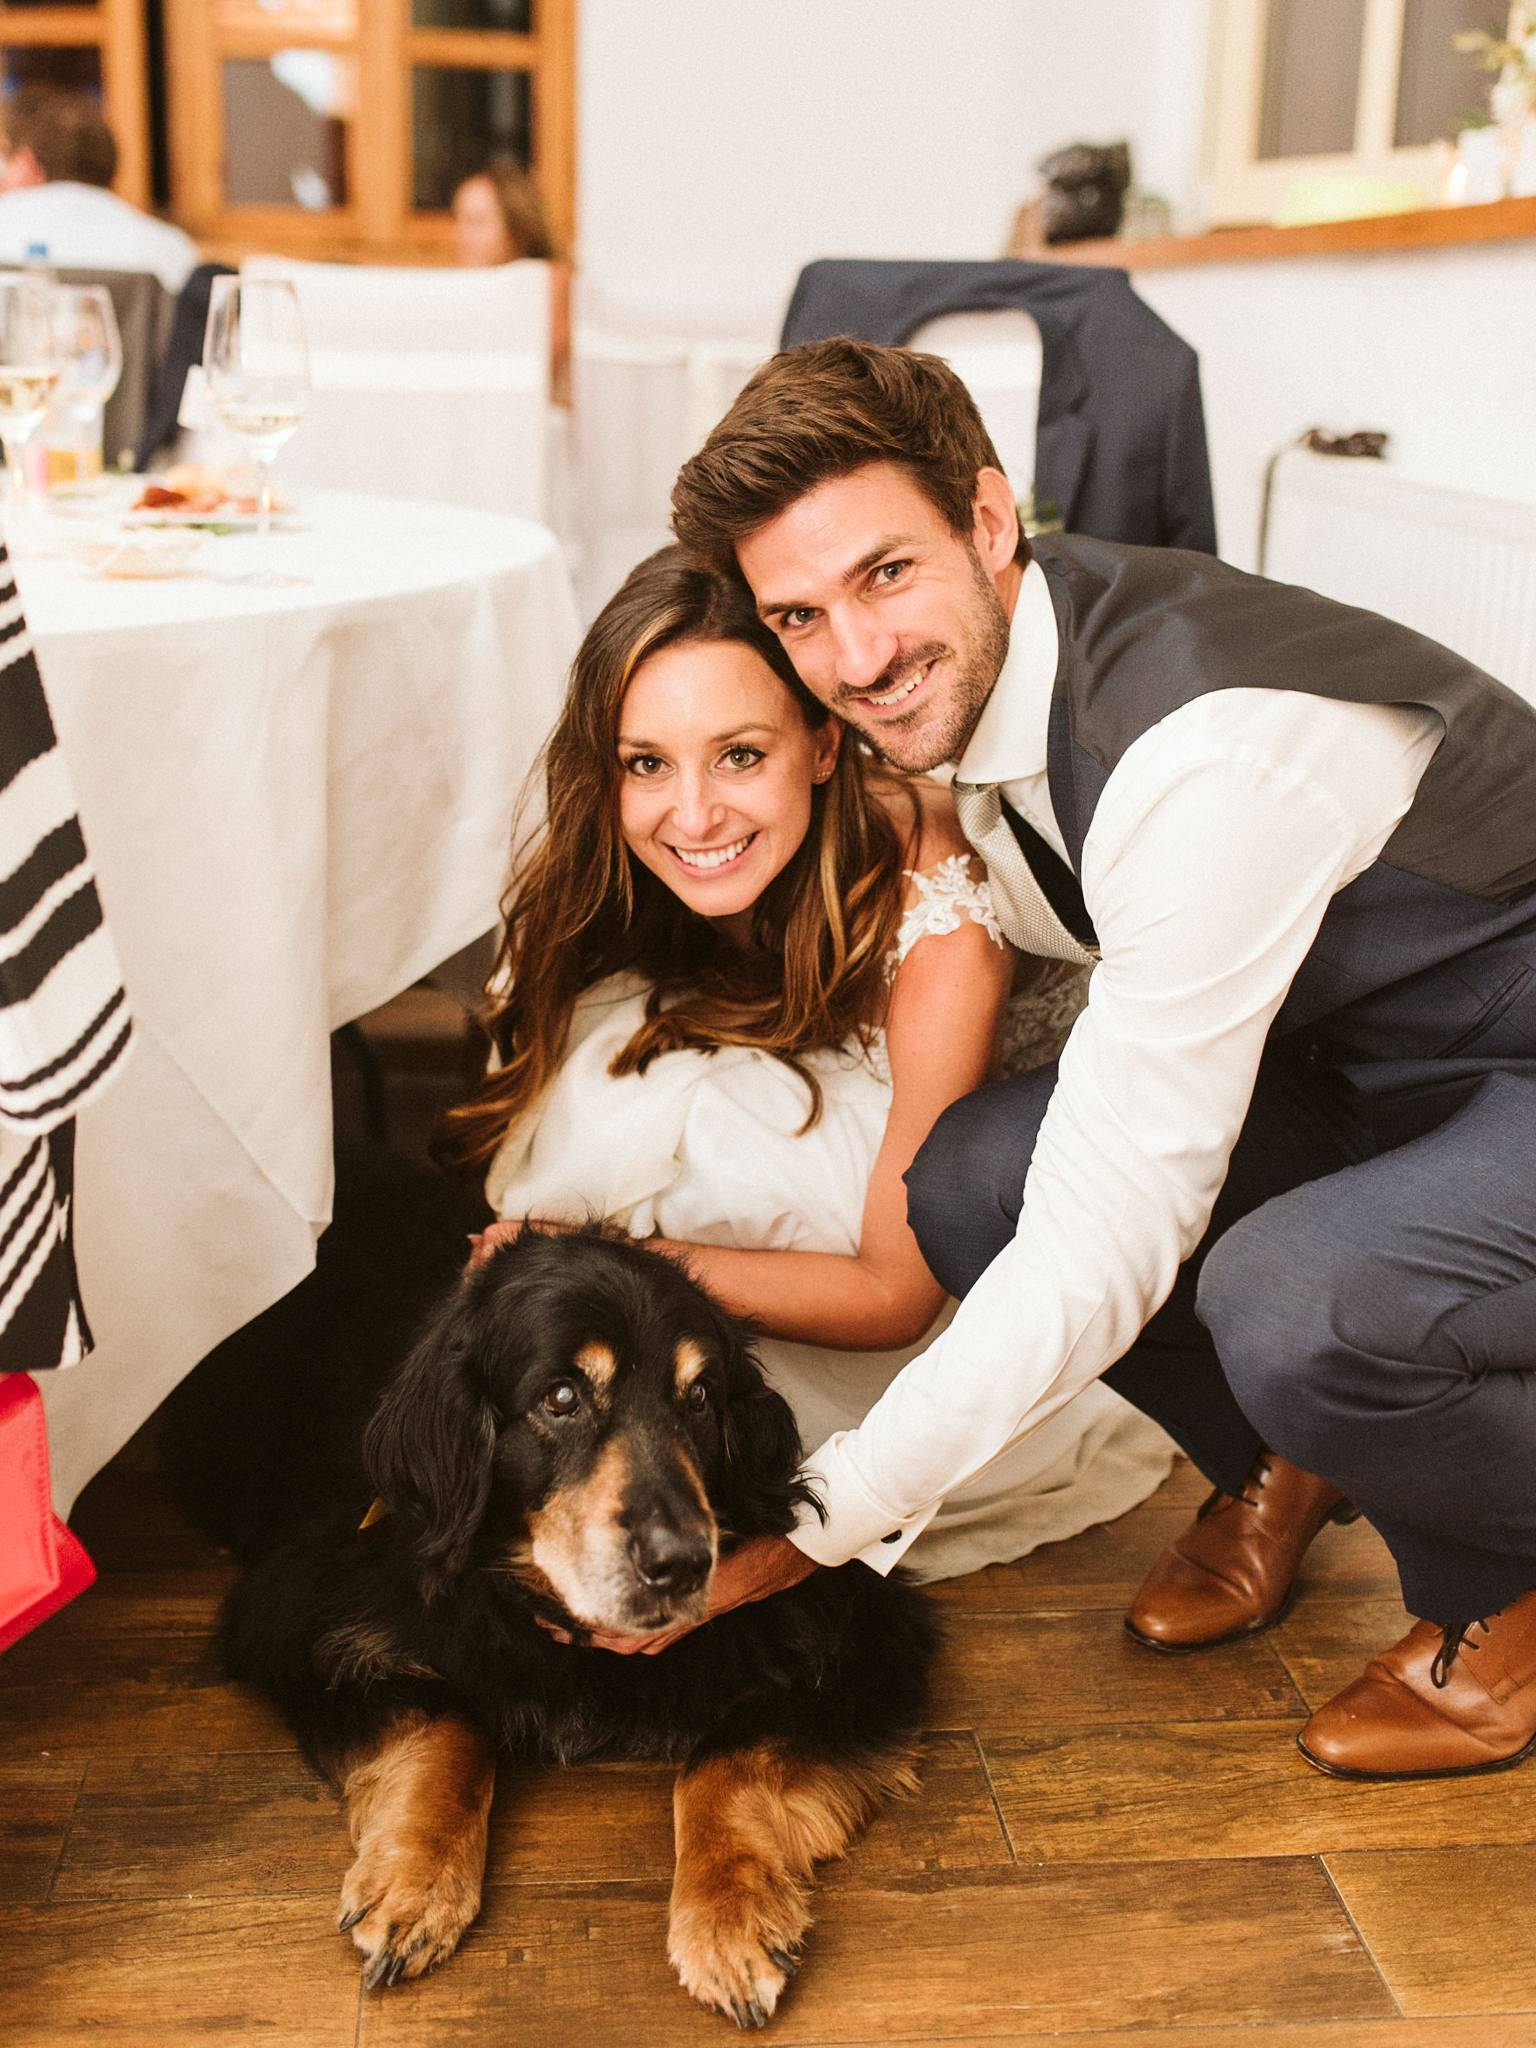 Dog Friendly Wedding In Austria